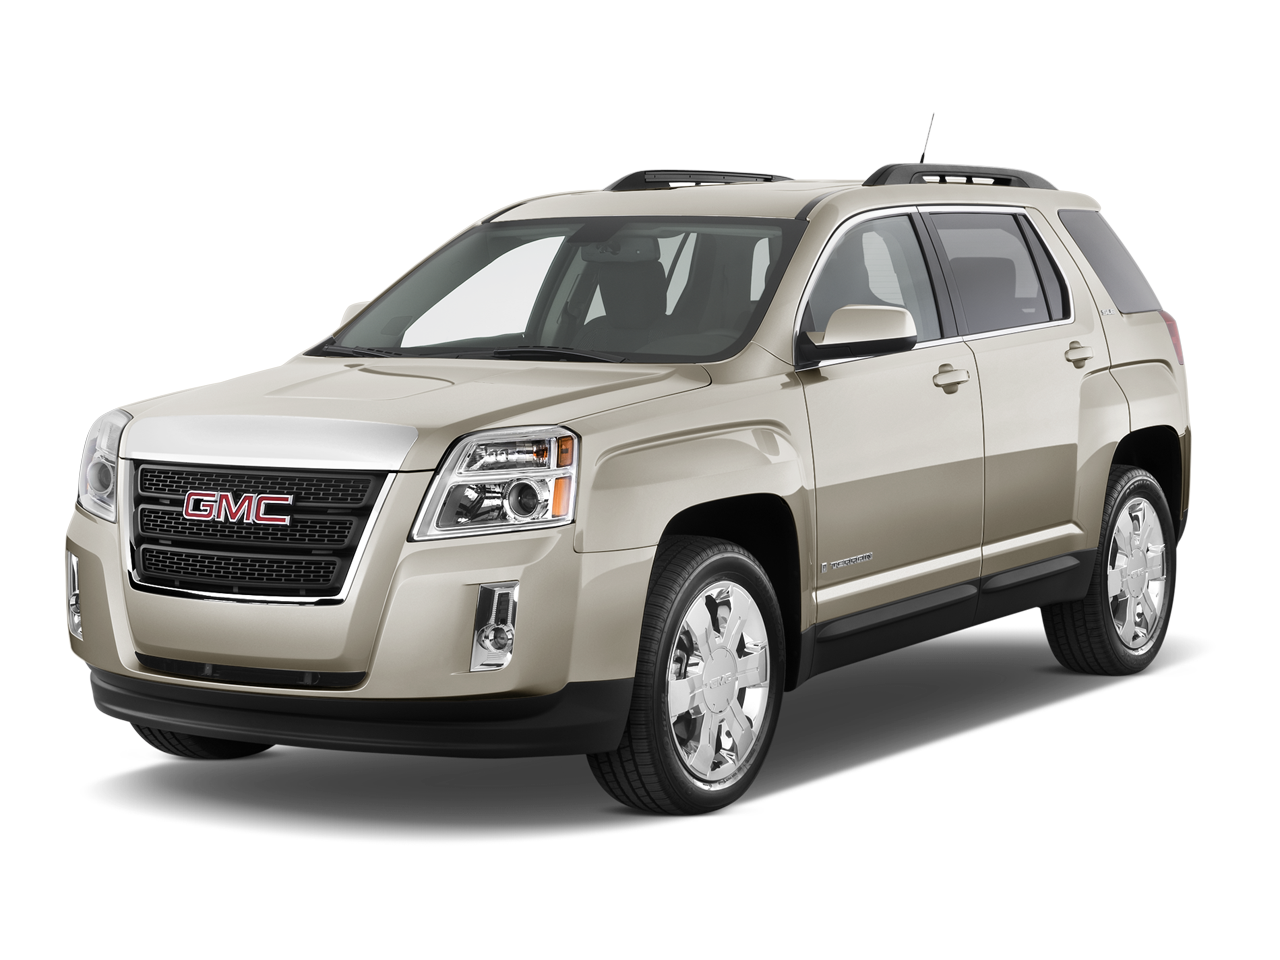 one owner 2015 gmc terrain slt near beaumont tx classic beaumont. Cars Review. Best American Auto & Cars Review